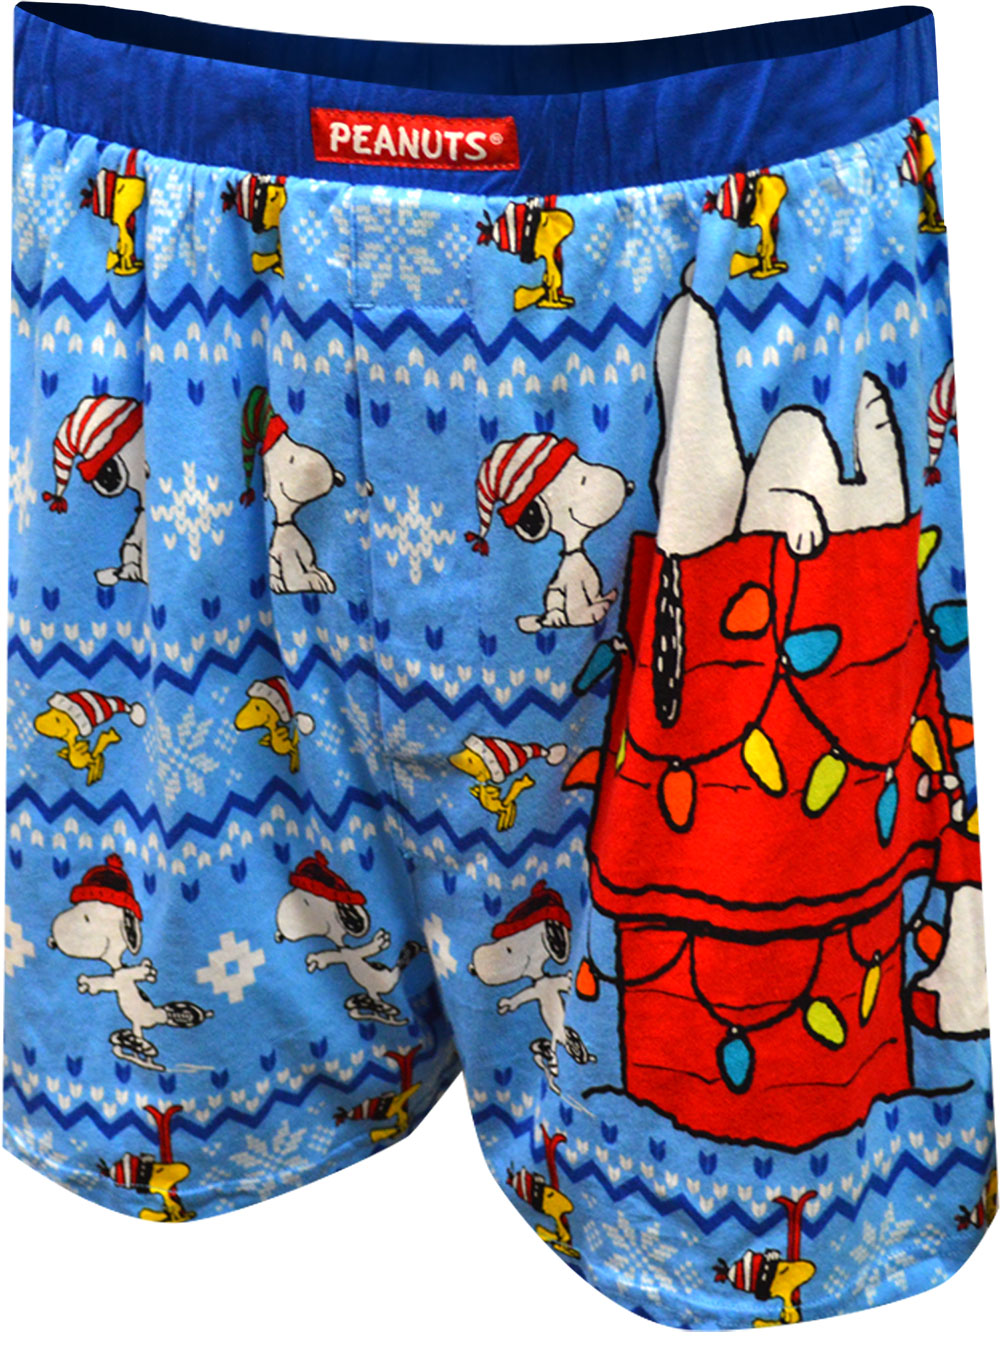 Image of Peanuts Snoopy and Woodstock Christmas Boxers for men